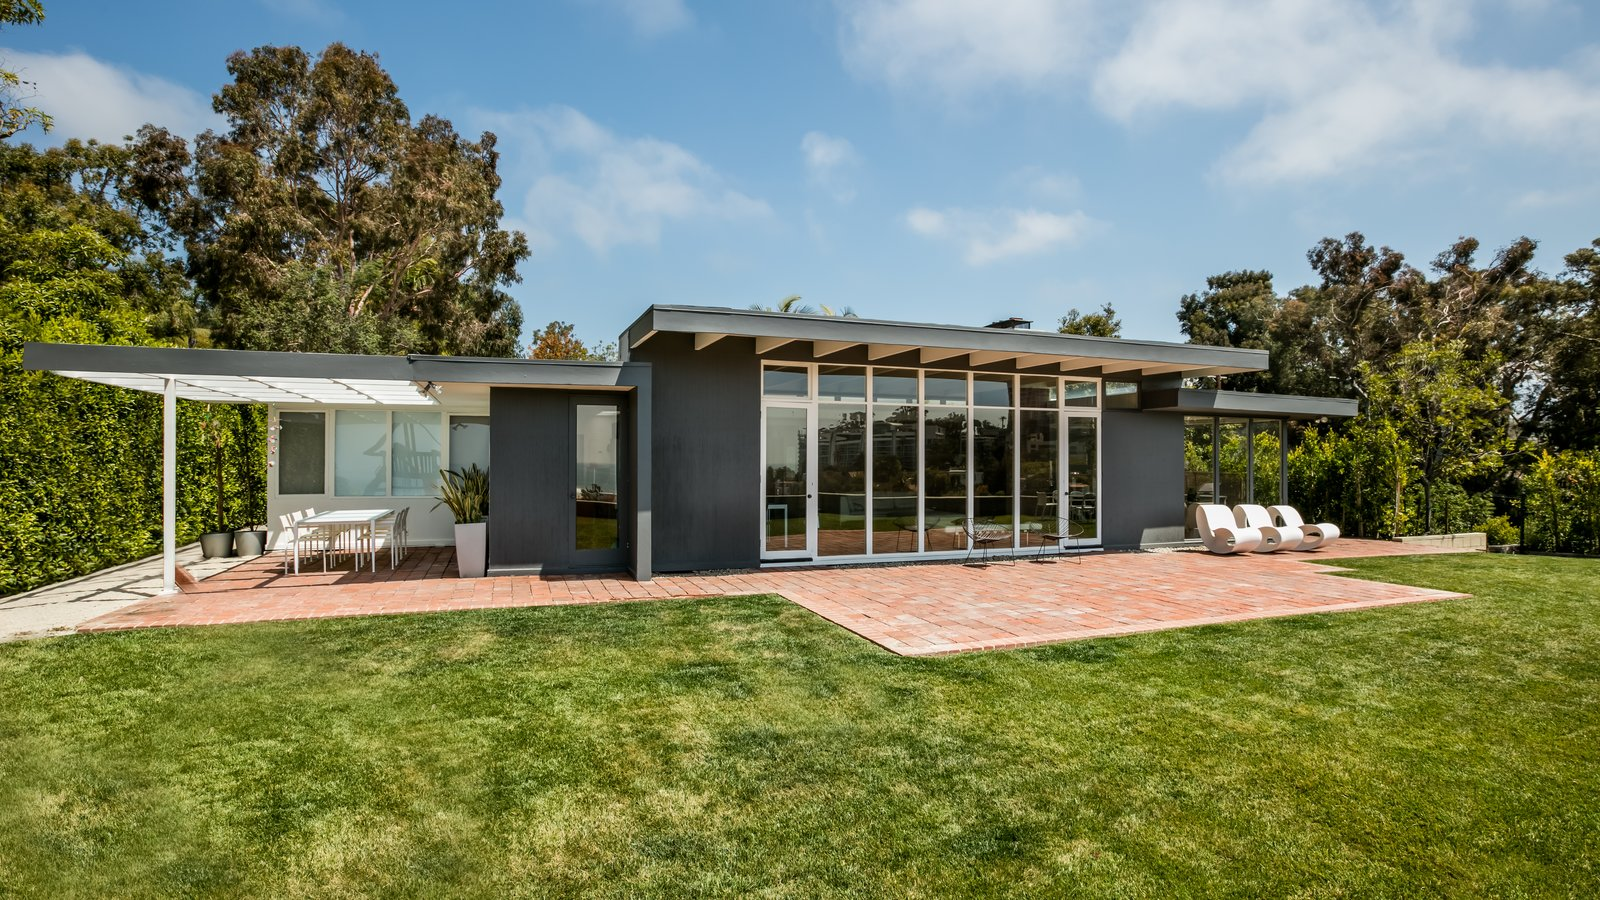 Case Study House 18 In L A Hits The Market At 10m And Includes Plans From Tom Kundig